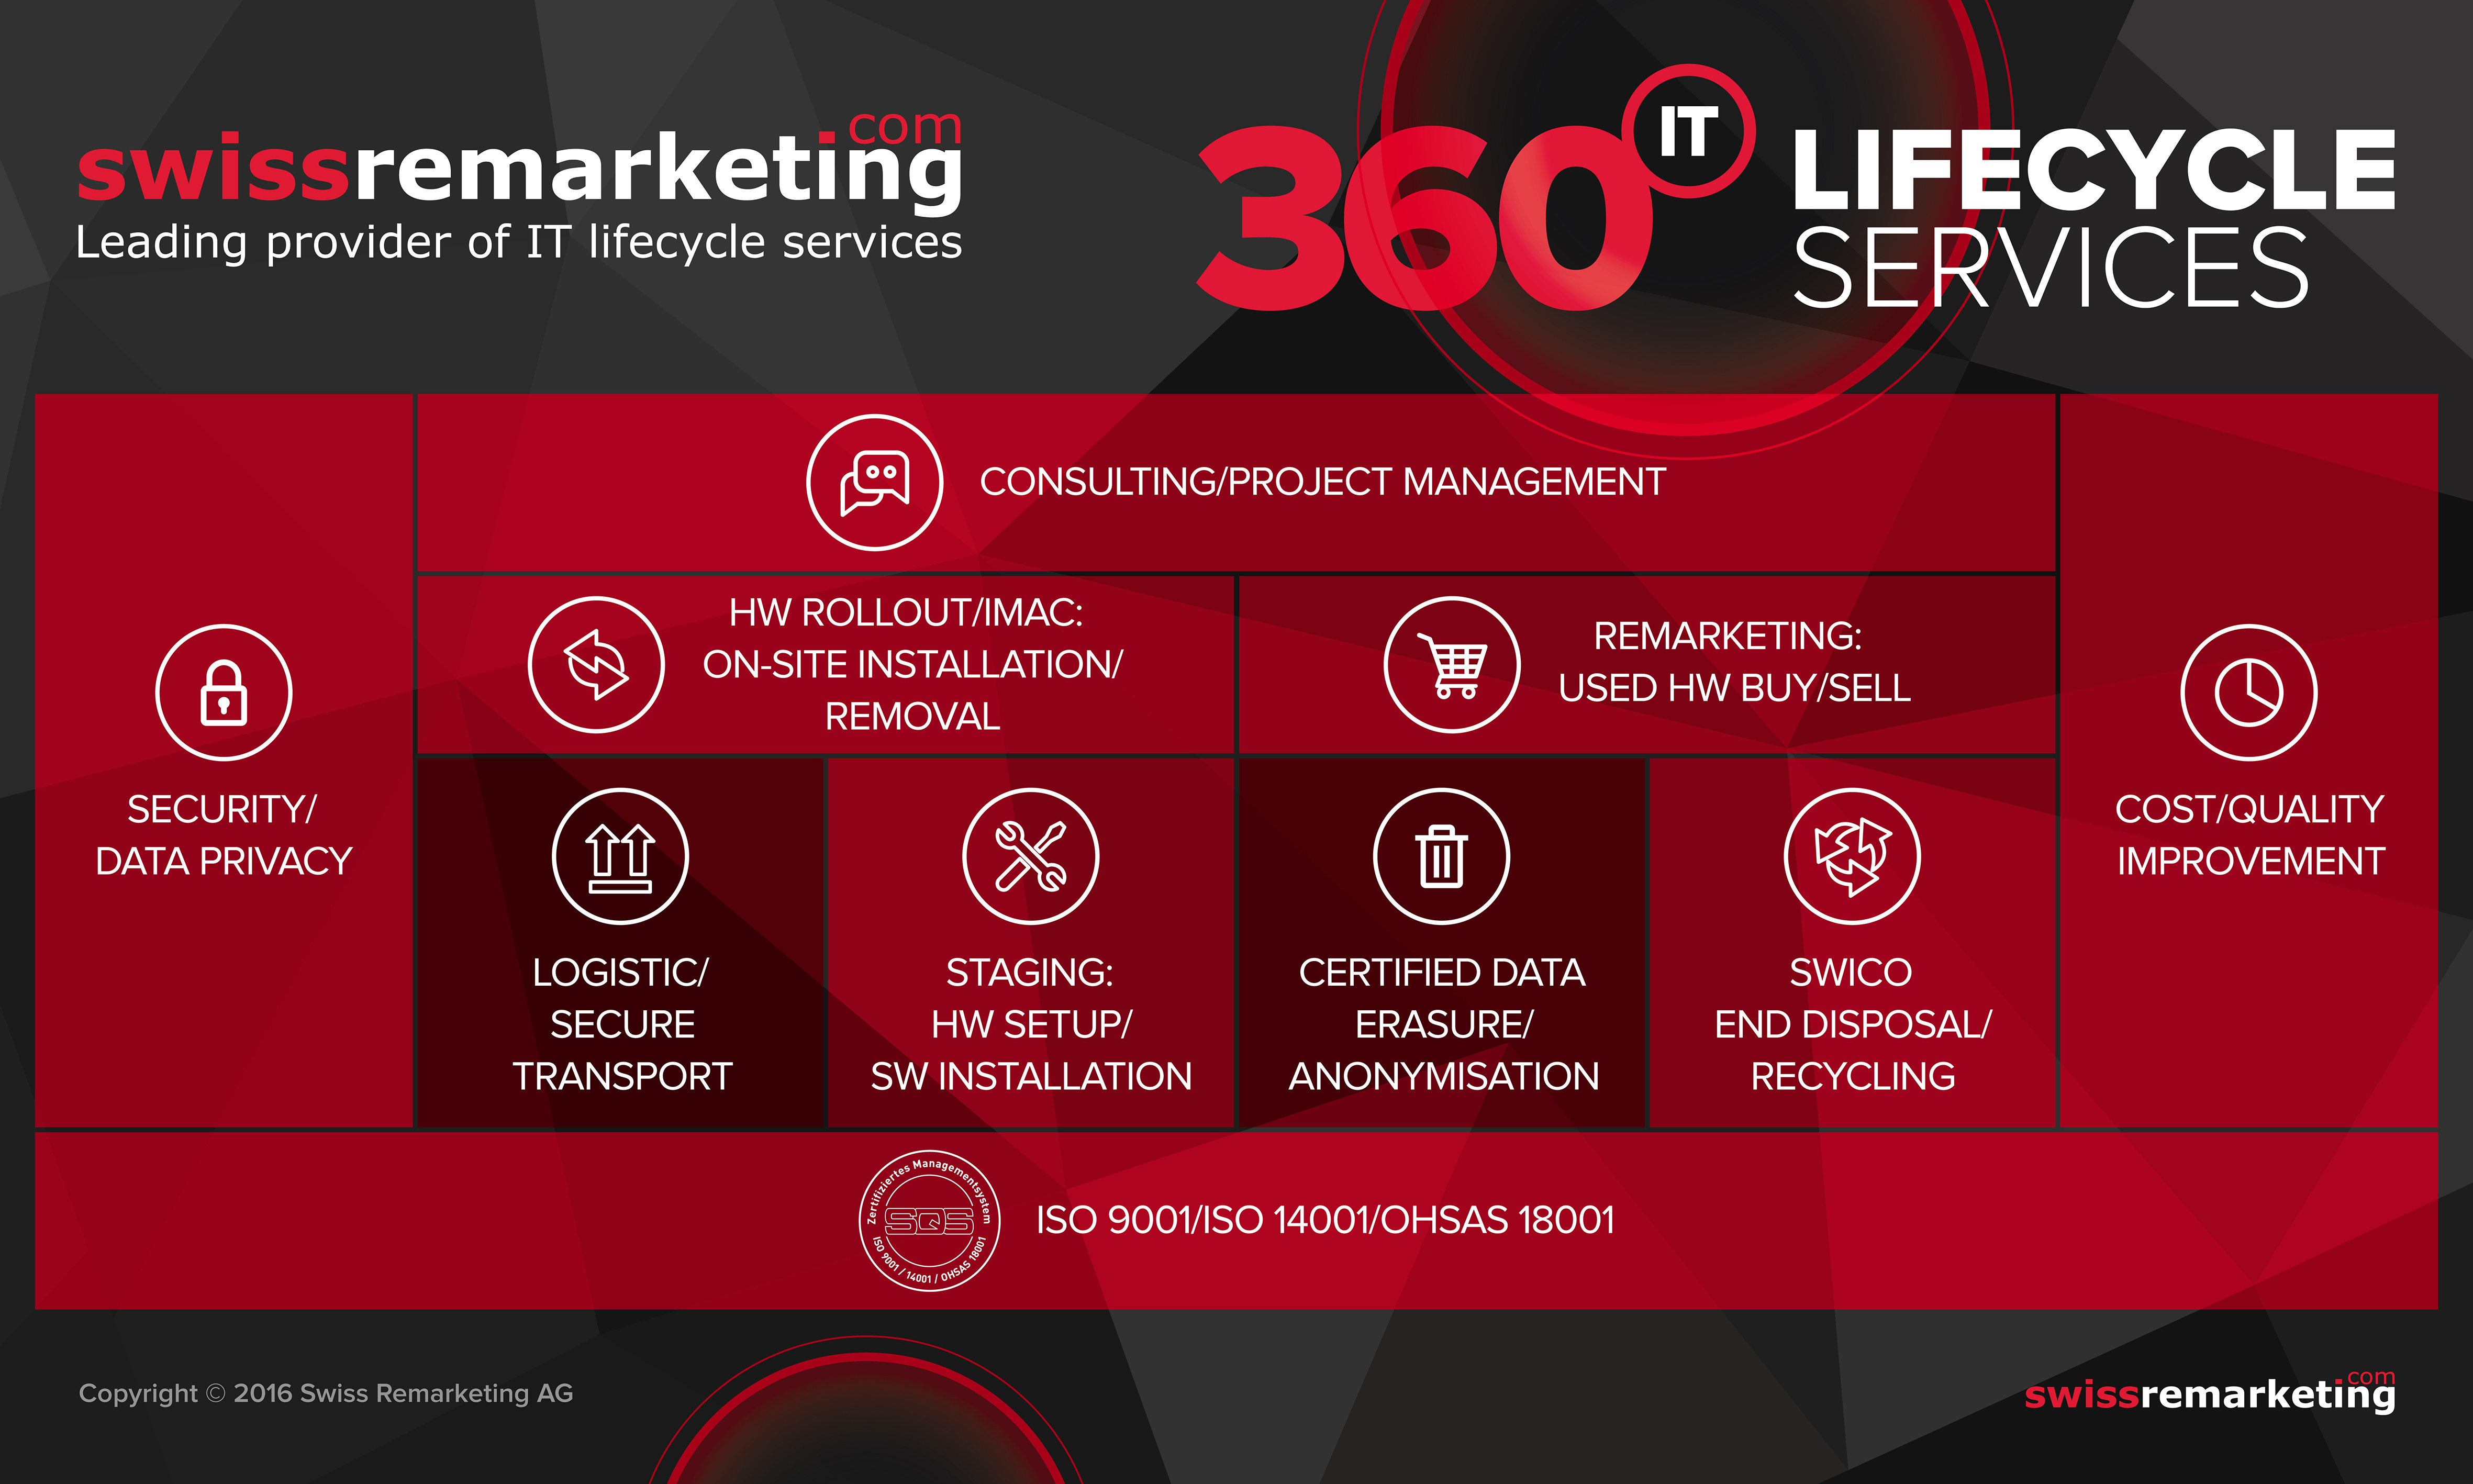 360 IT Lifecycle Services